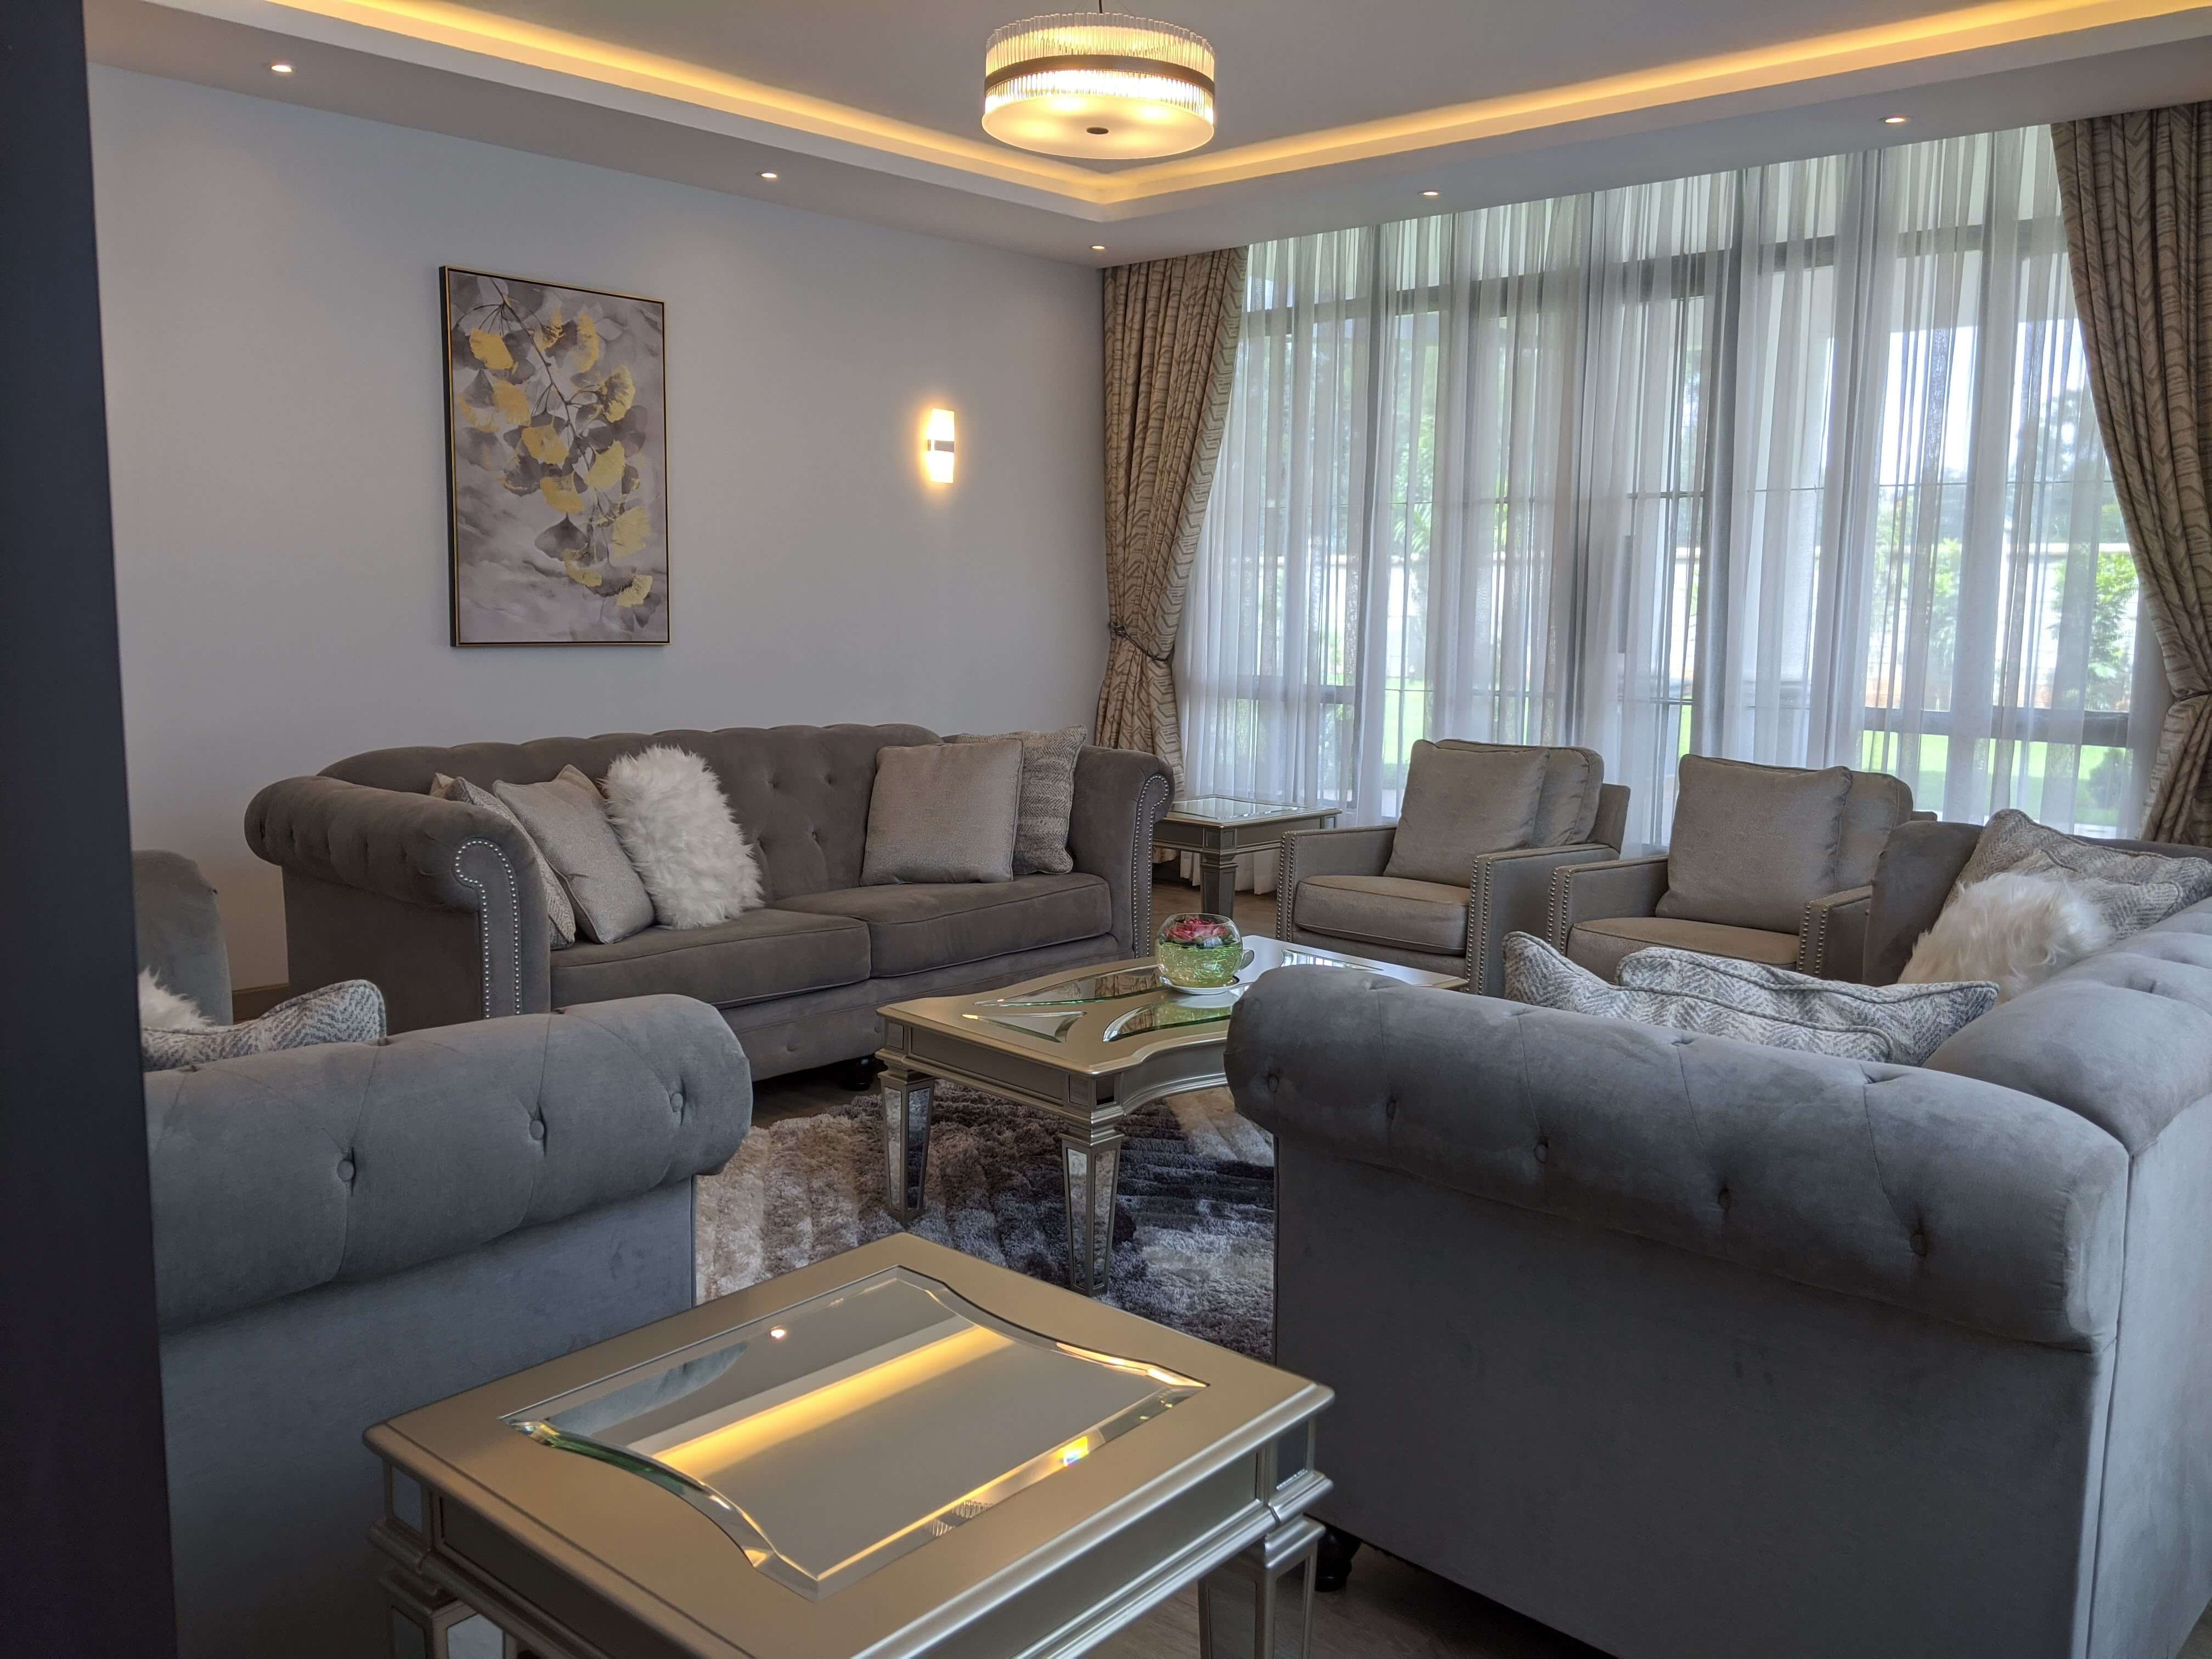 Interior Design Styles In Kenya Vacancies